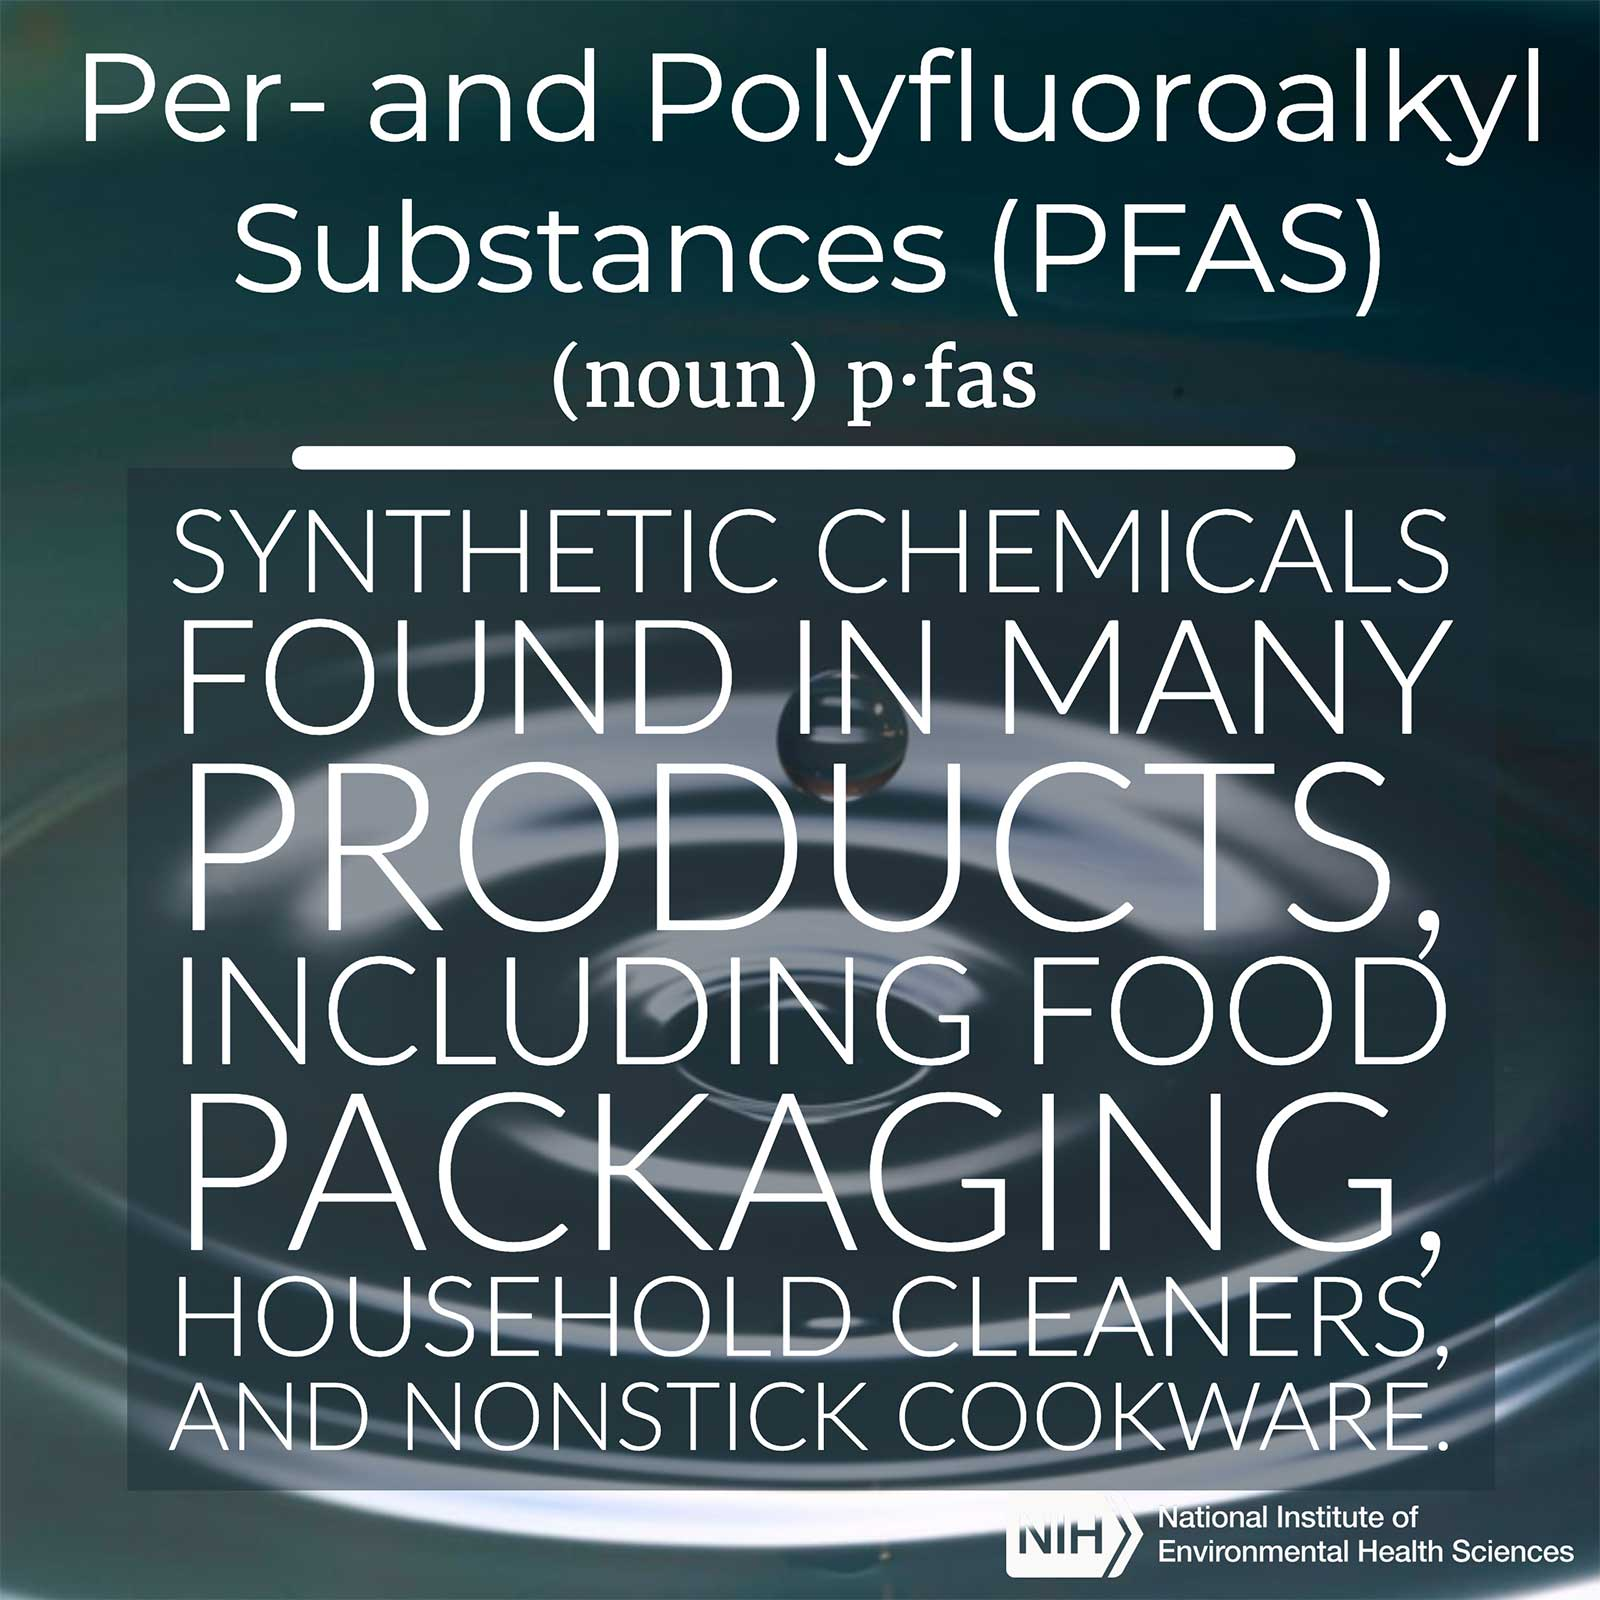 Per- and Polyfluoroalkyl Substances (PFAS) (noun) defined as 'synthetic chemicals found in many products, including food packaging, household cleaners and nonstick cookware.'